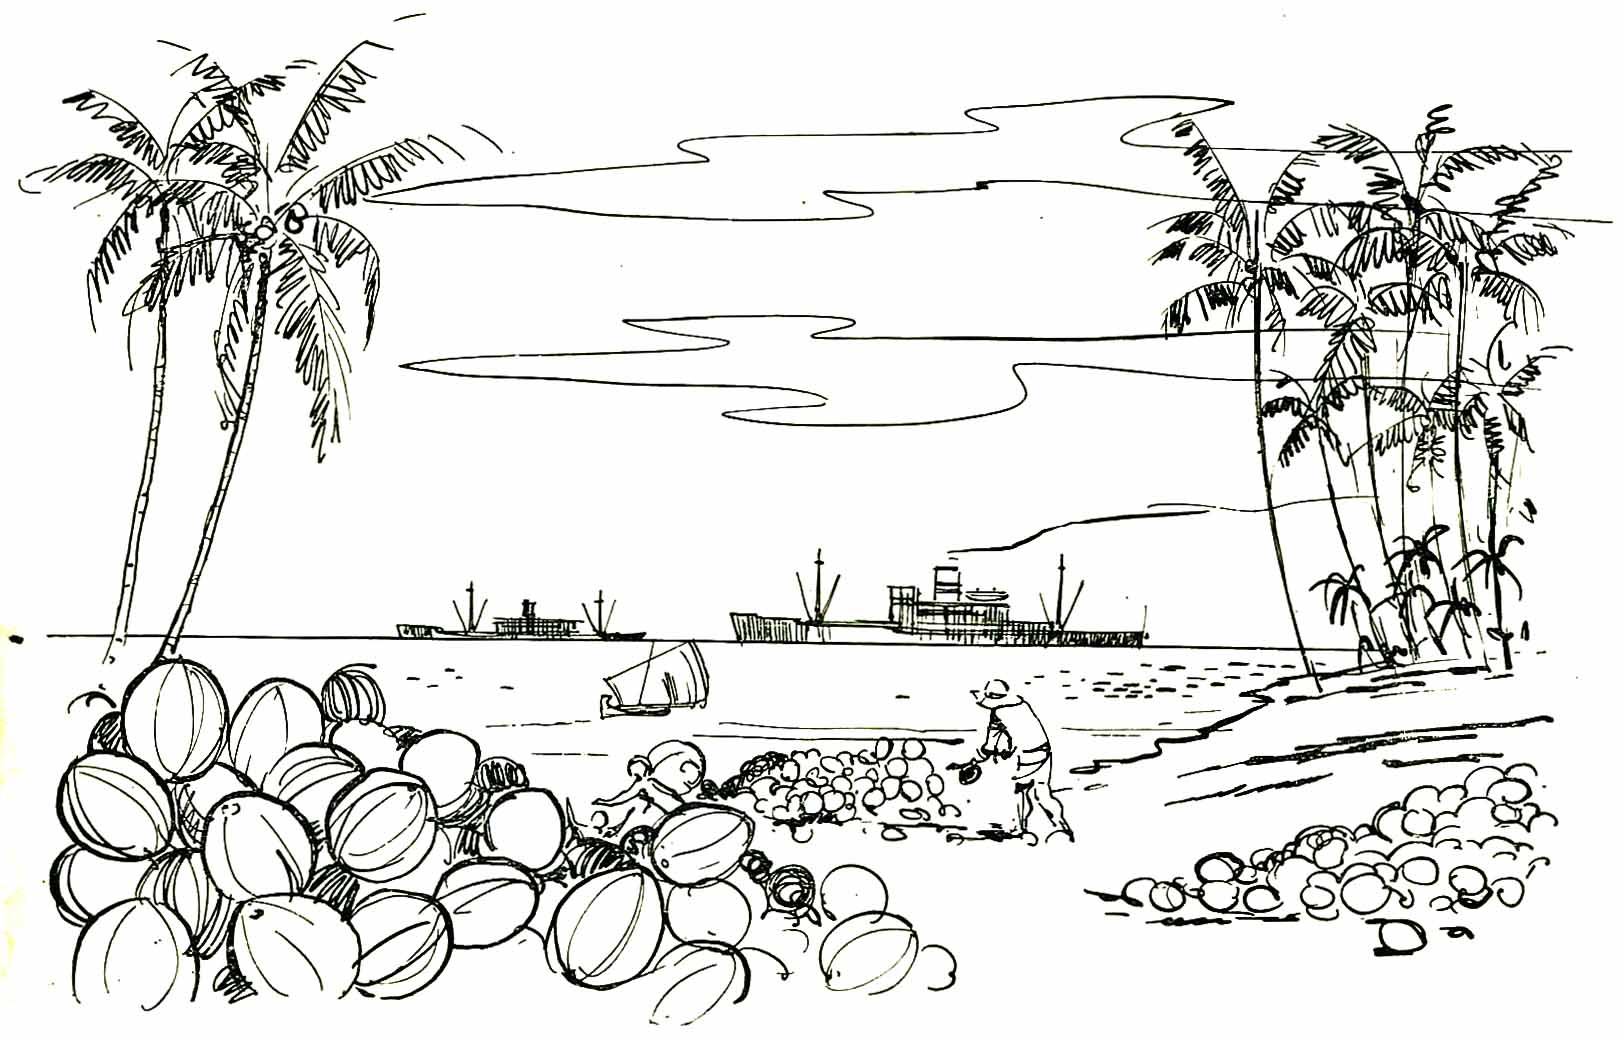 Drawing. Source: Wikimedia Commons